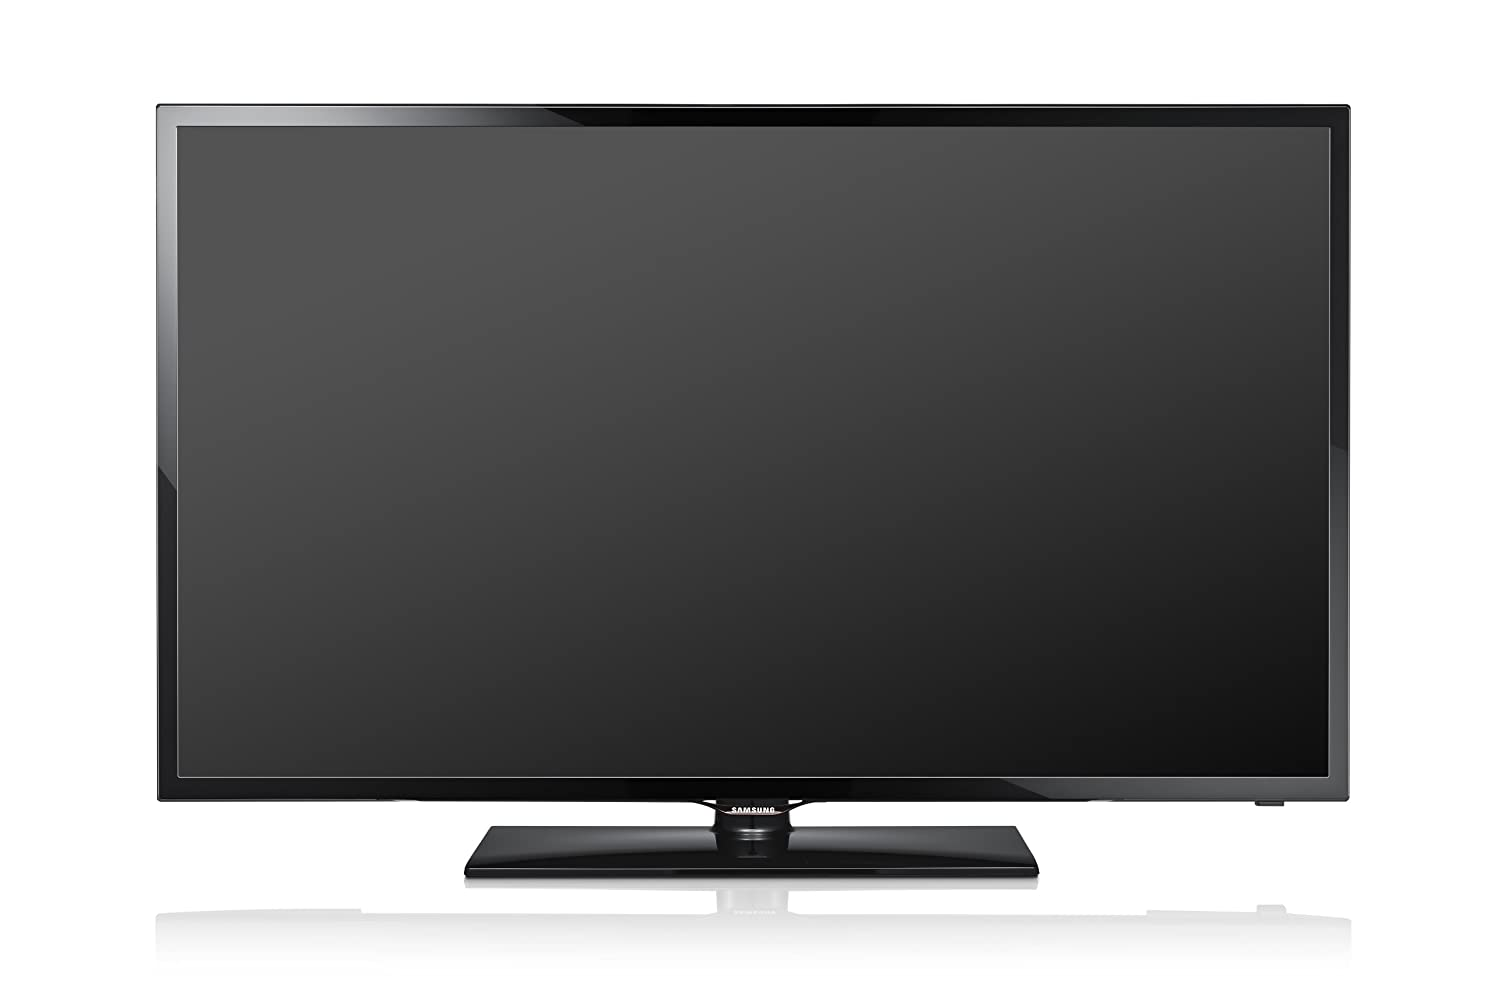 samsung flat screen tv on wall. amazon.com: samsung un22f5000 22-inch 1080p 60hz led hdtv (2013 model): electronics flat screen tv on wall )